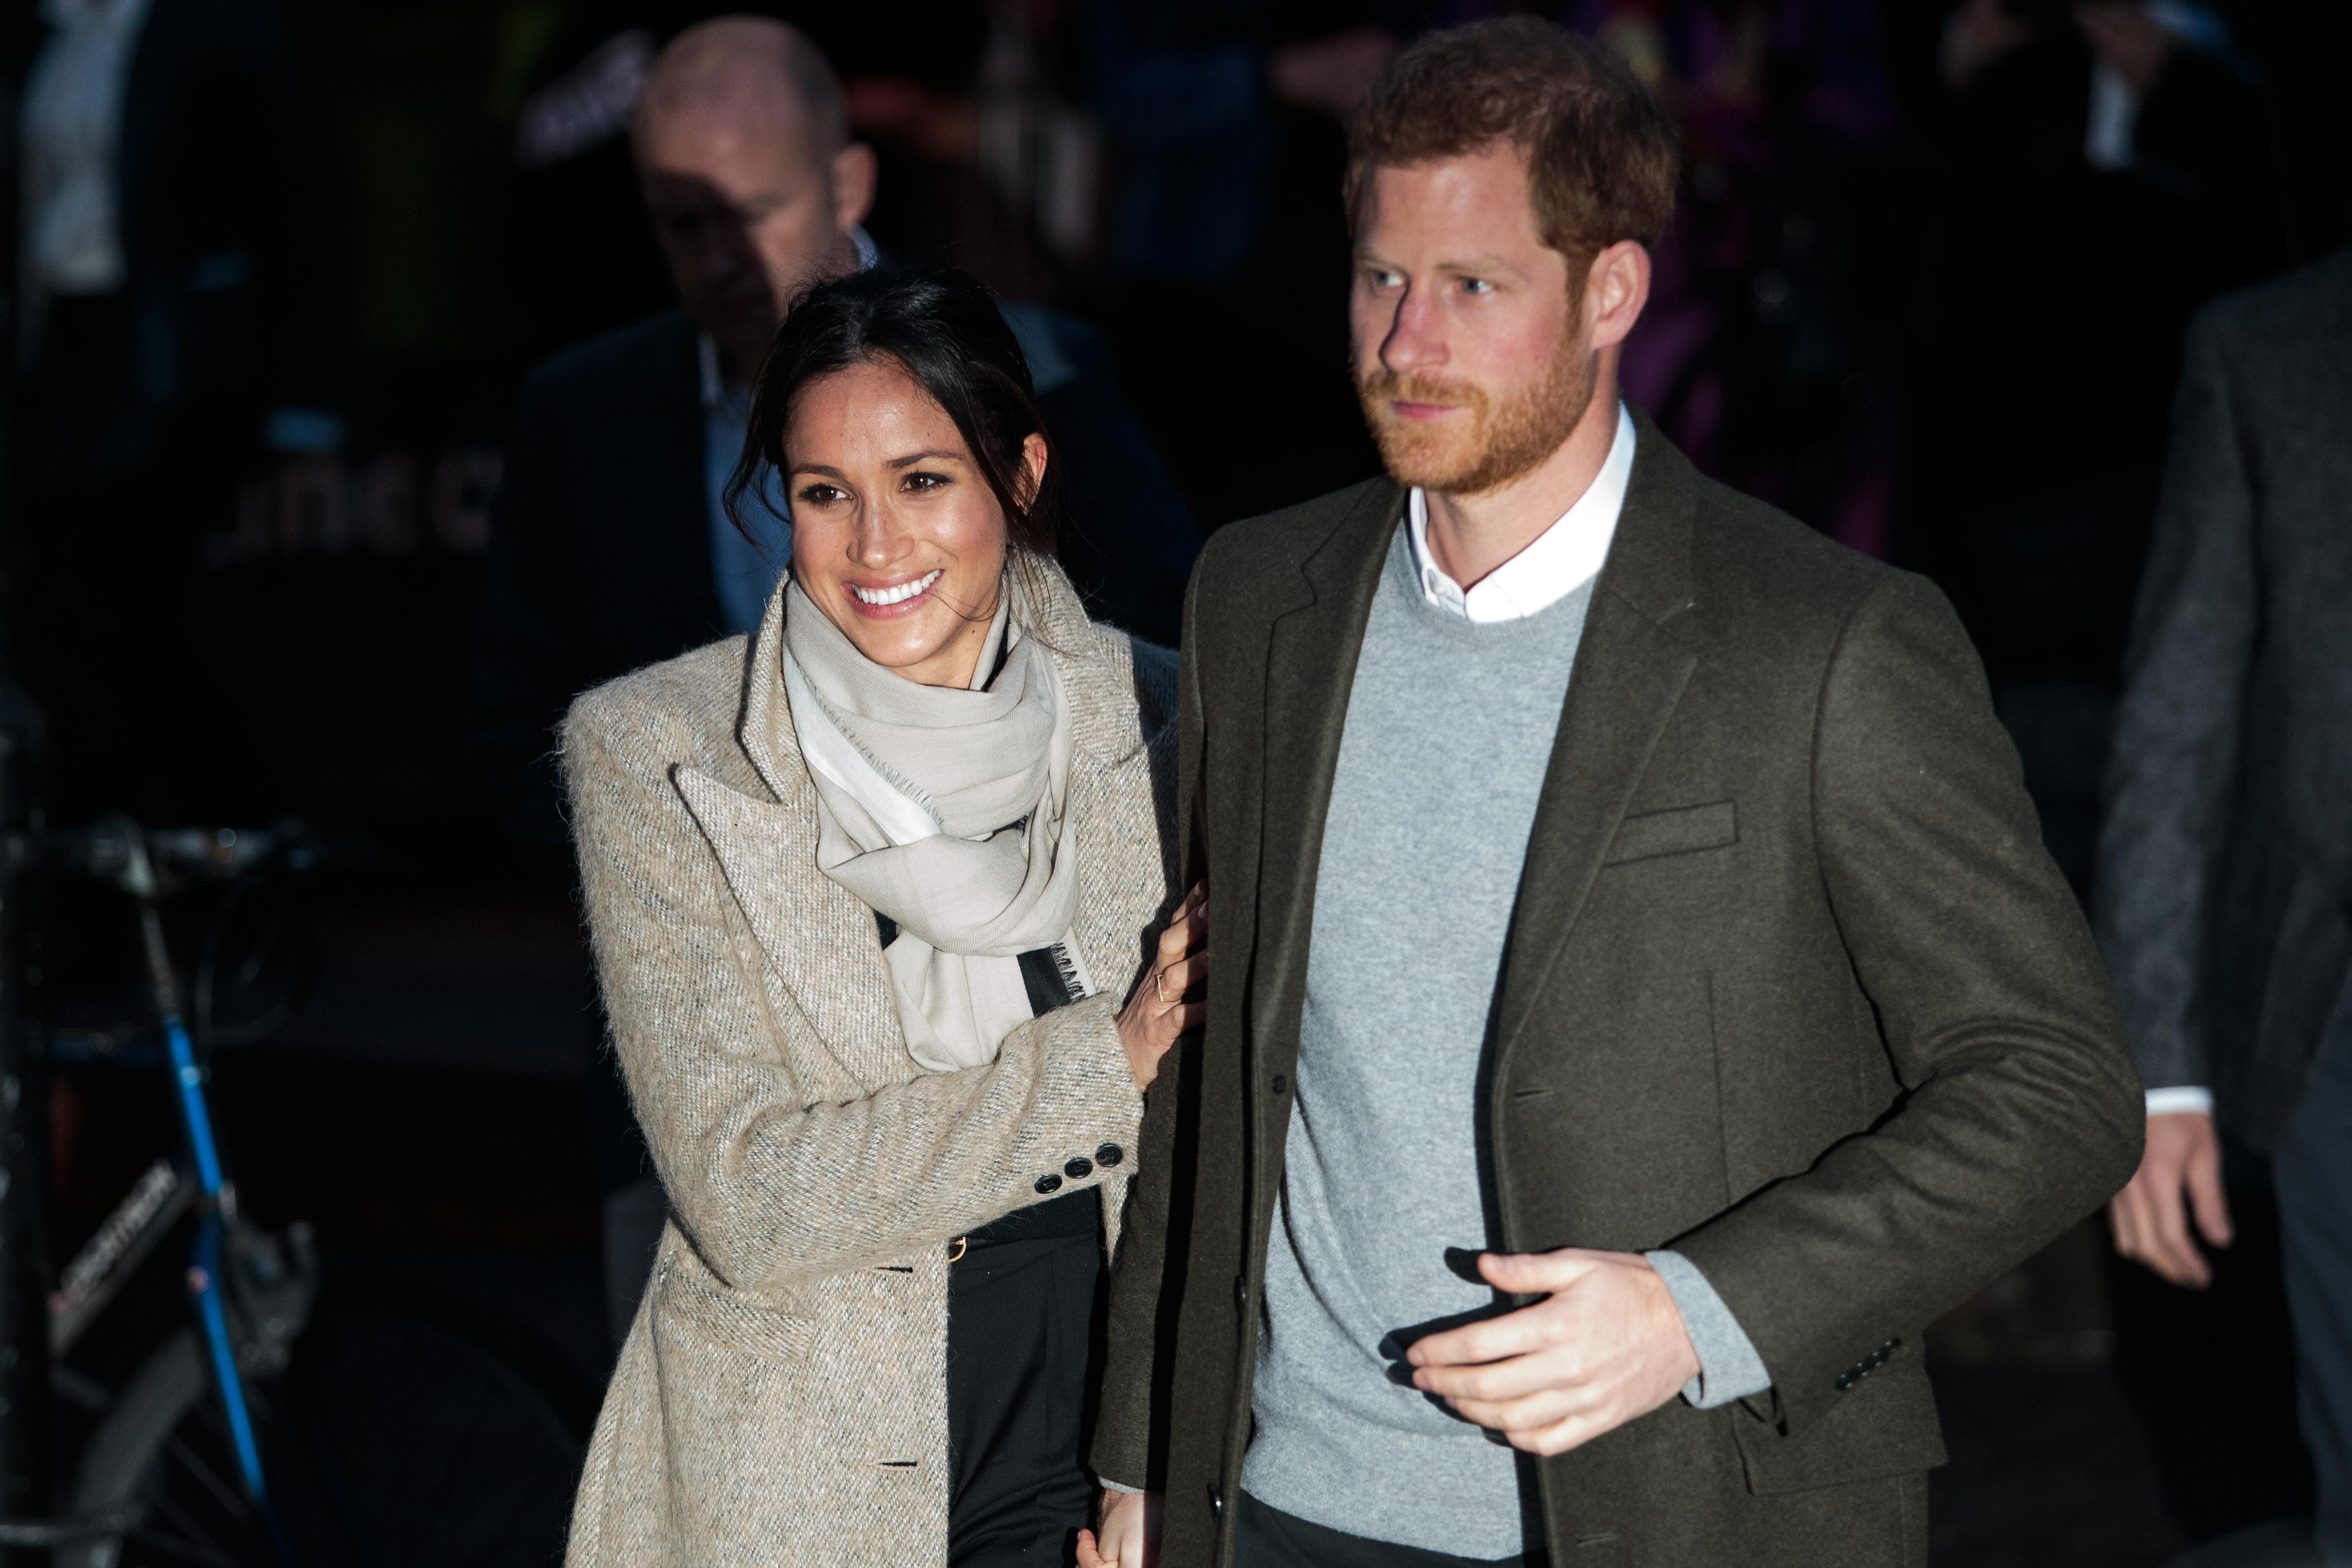 Princess Diana Would Ve Loved Meghan Markle And Prince Harry S Engagement Larry King Says